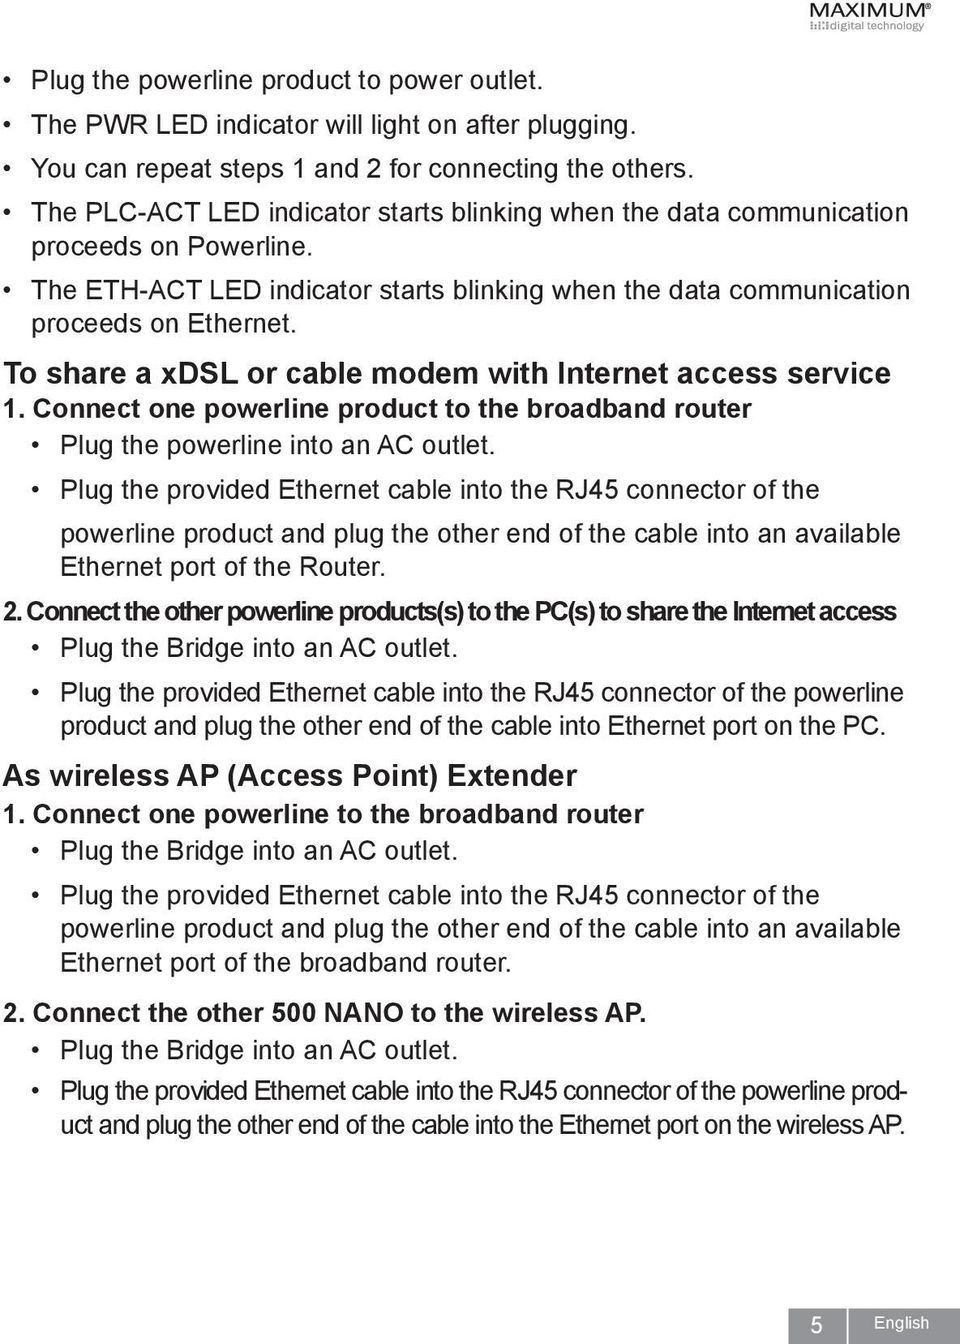 To share a xdsl or cable modem with Internet access service 1. Connect one powerline product to the broadband router Plug the powerline into an AC outlet.